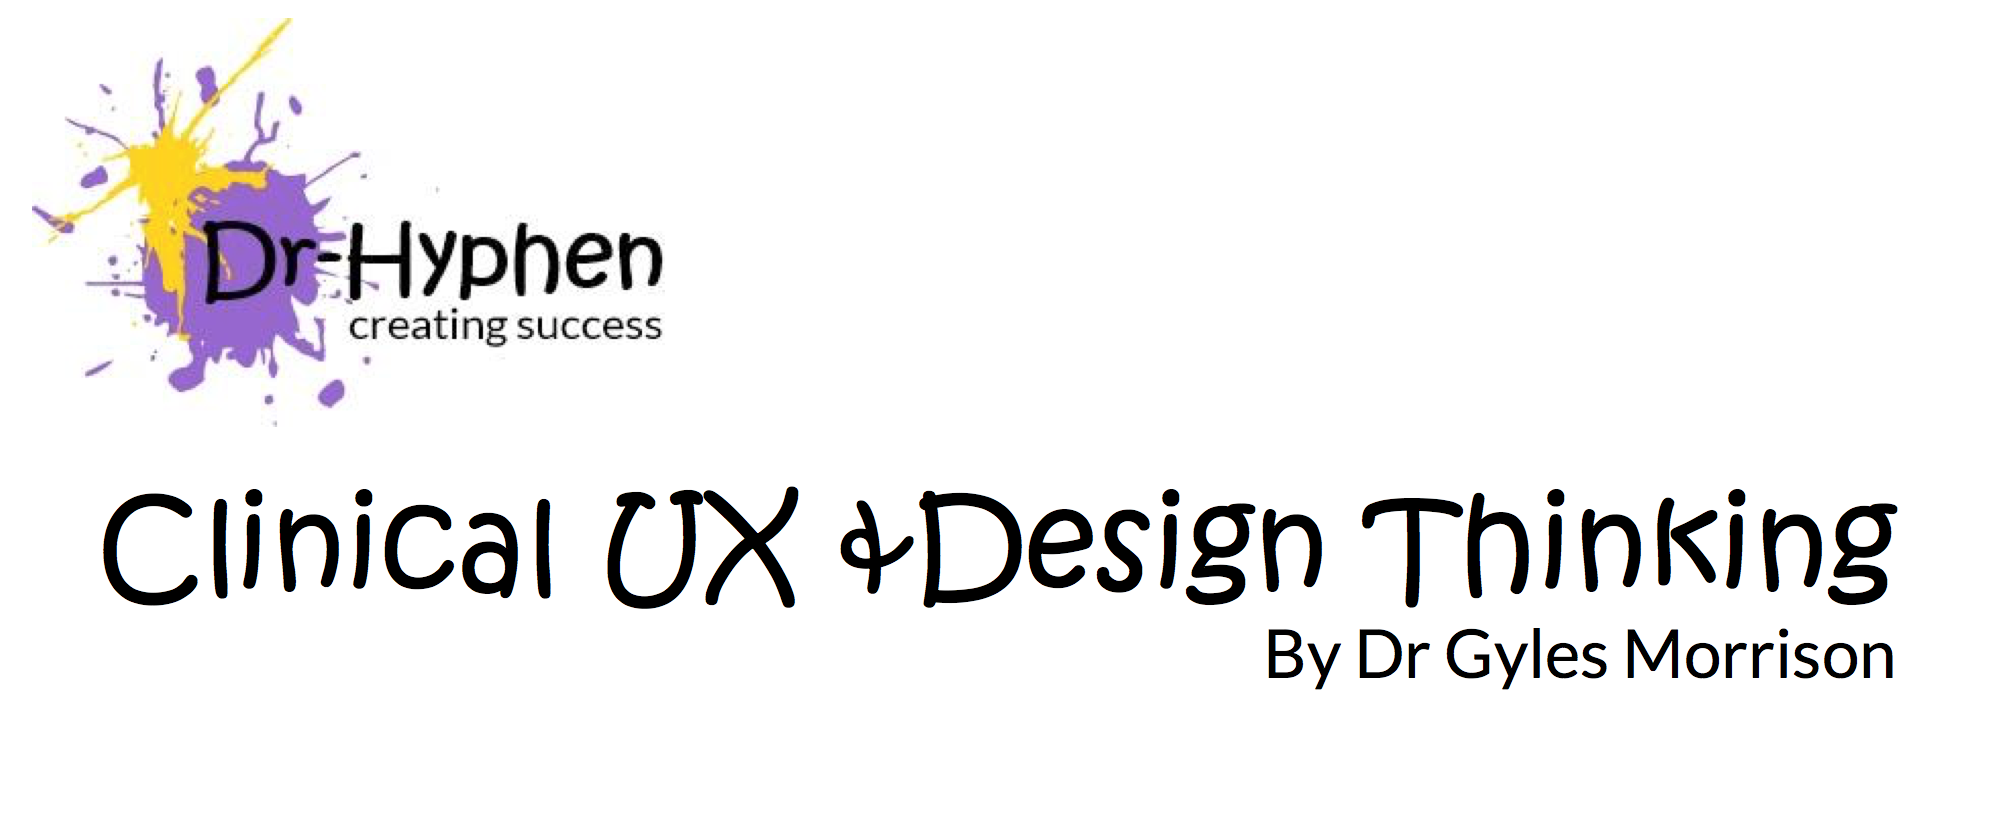 Clinical UX and Design Thinking